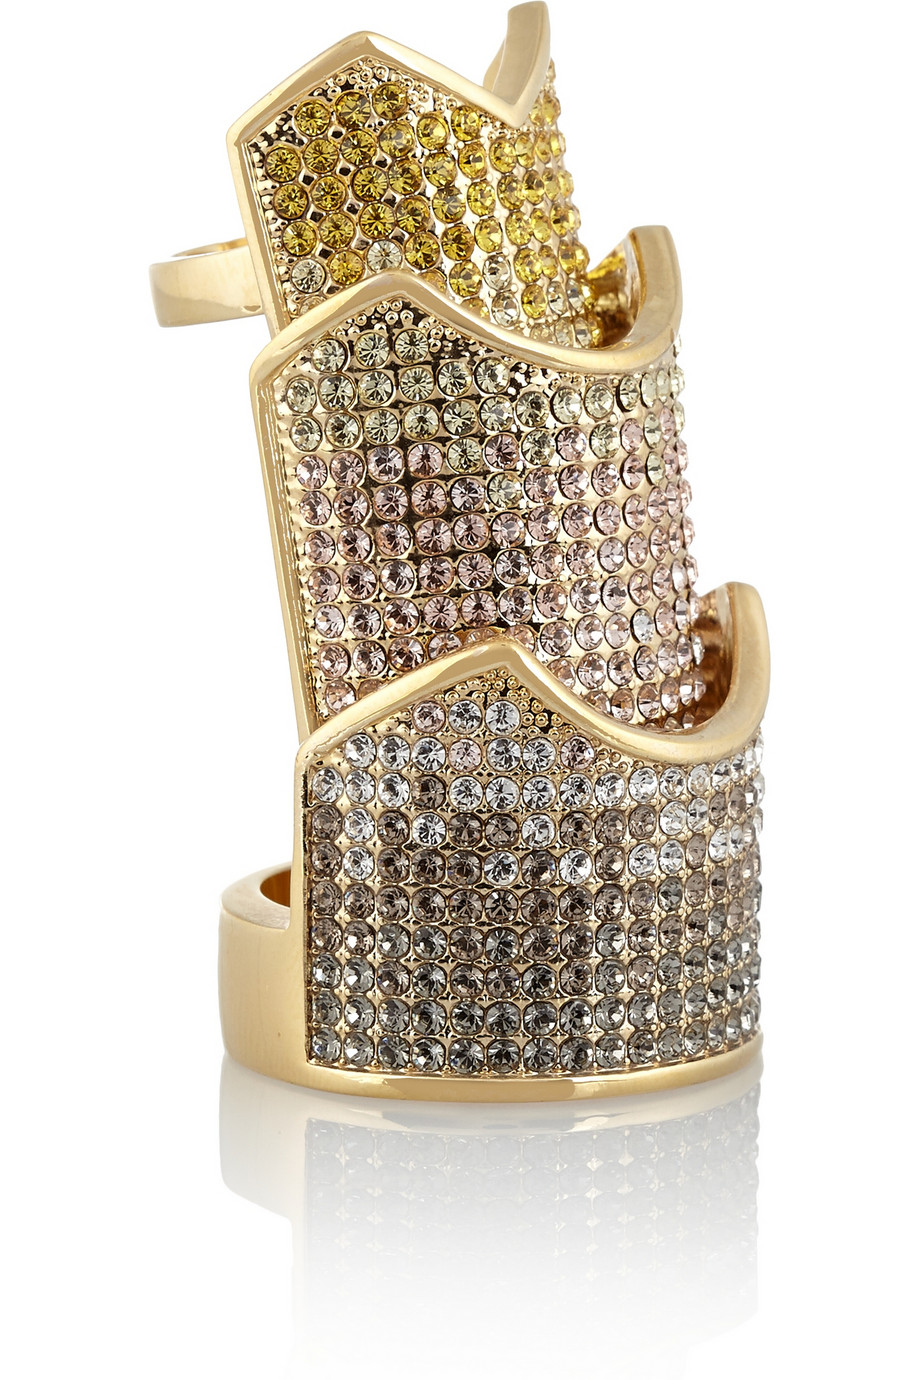 Eddie Borgo Hinged Ring $170 marked down from $425